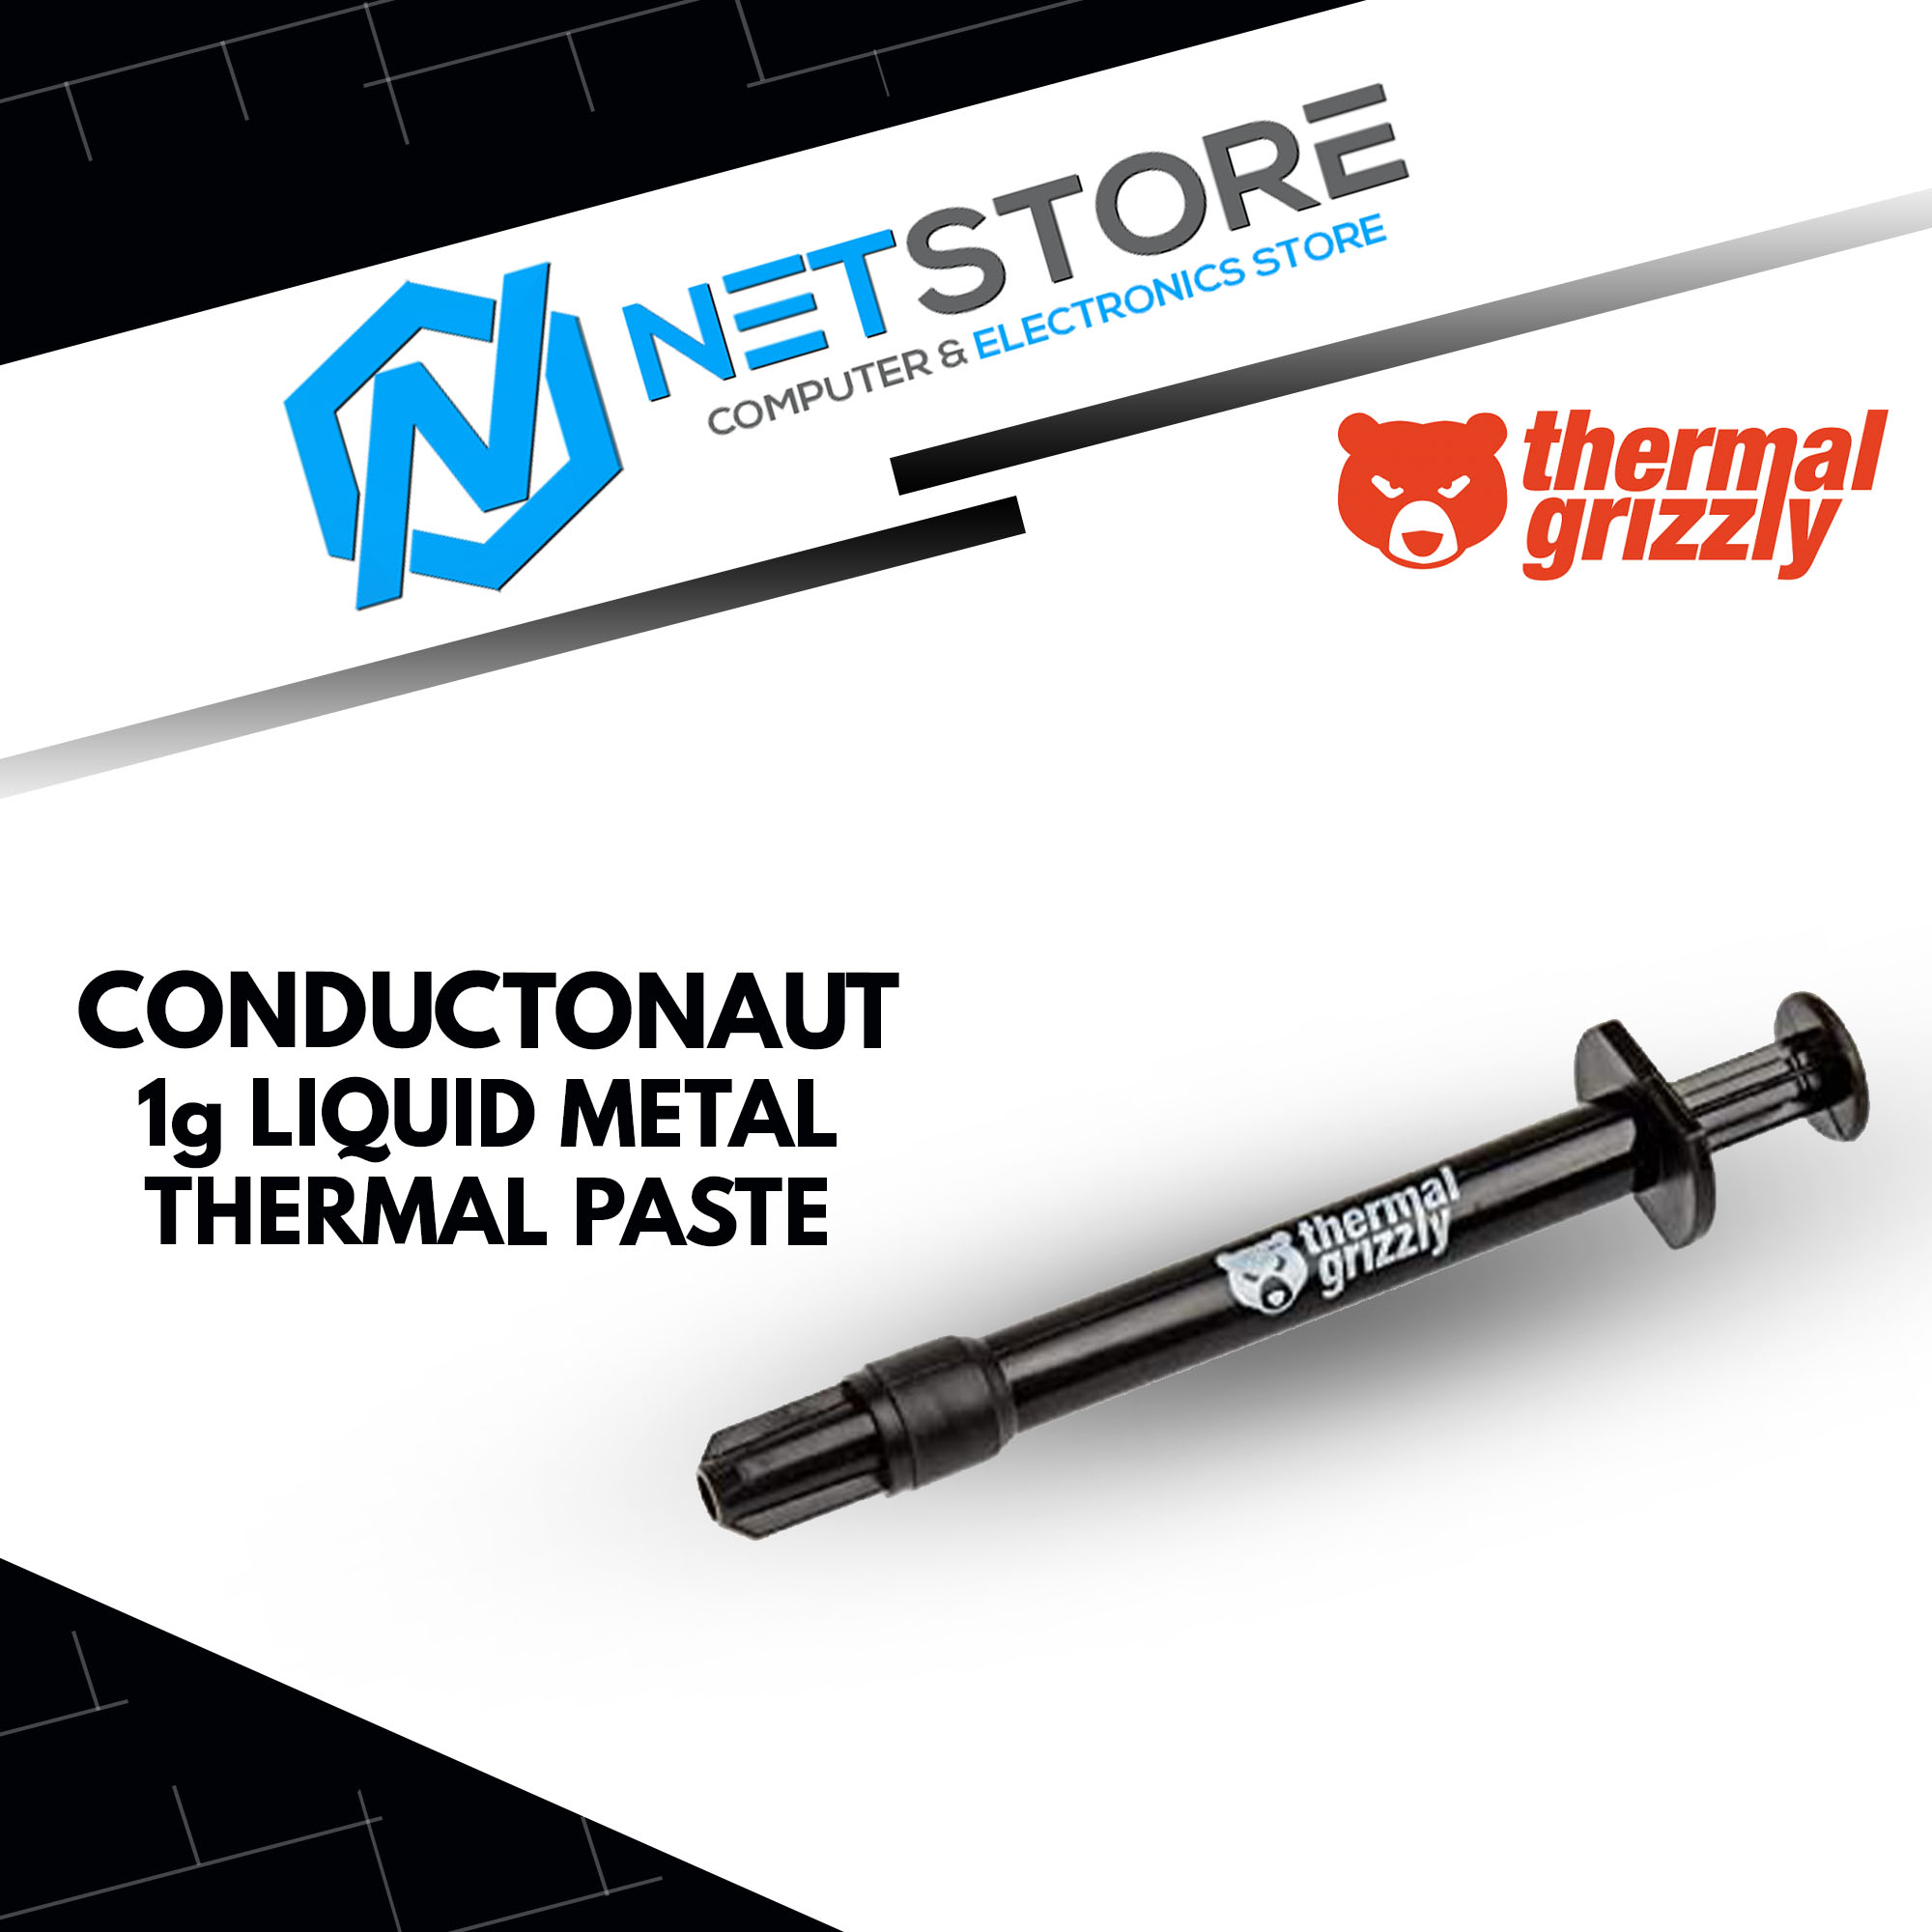 THERMAL GRIZZLY CONDUCTONAUT 1G LIQUID METAL THERMAL PASTE TG-C-001-R